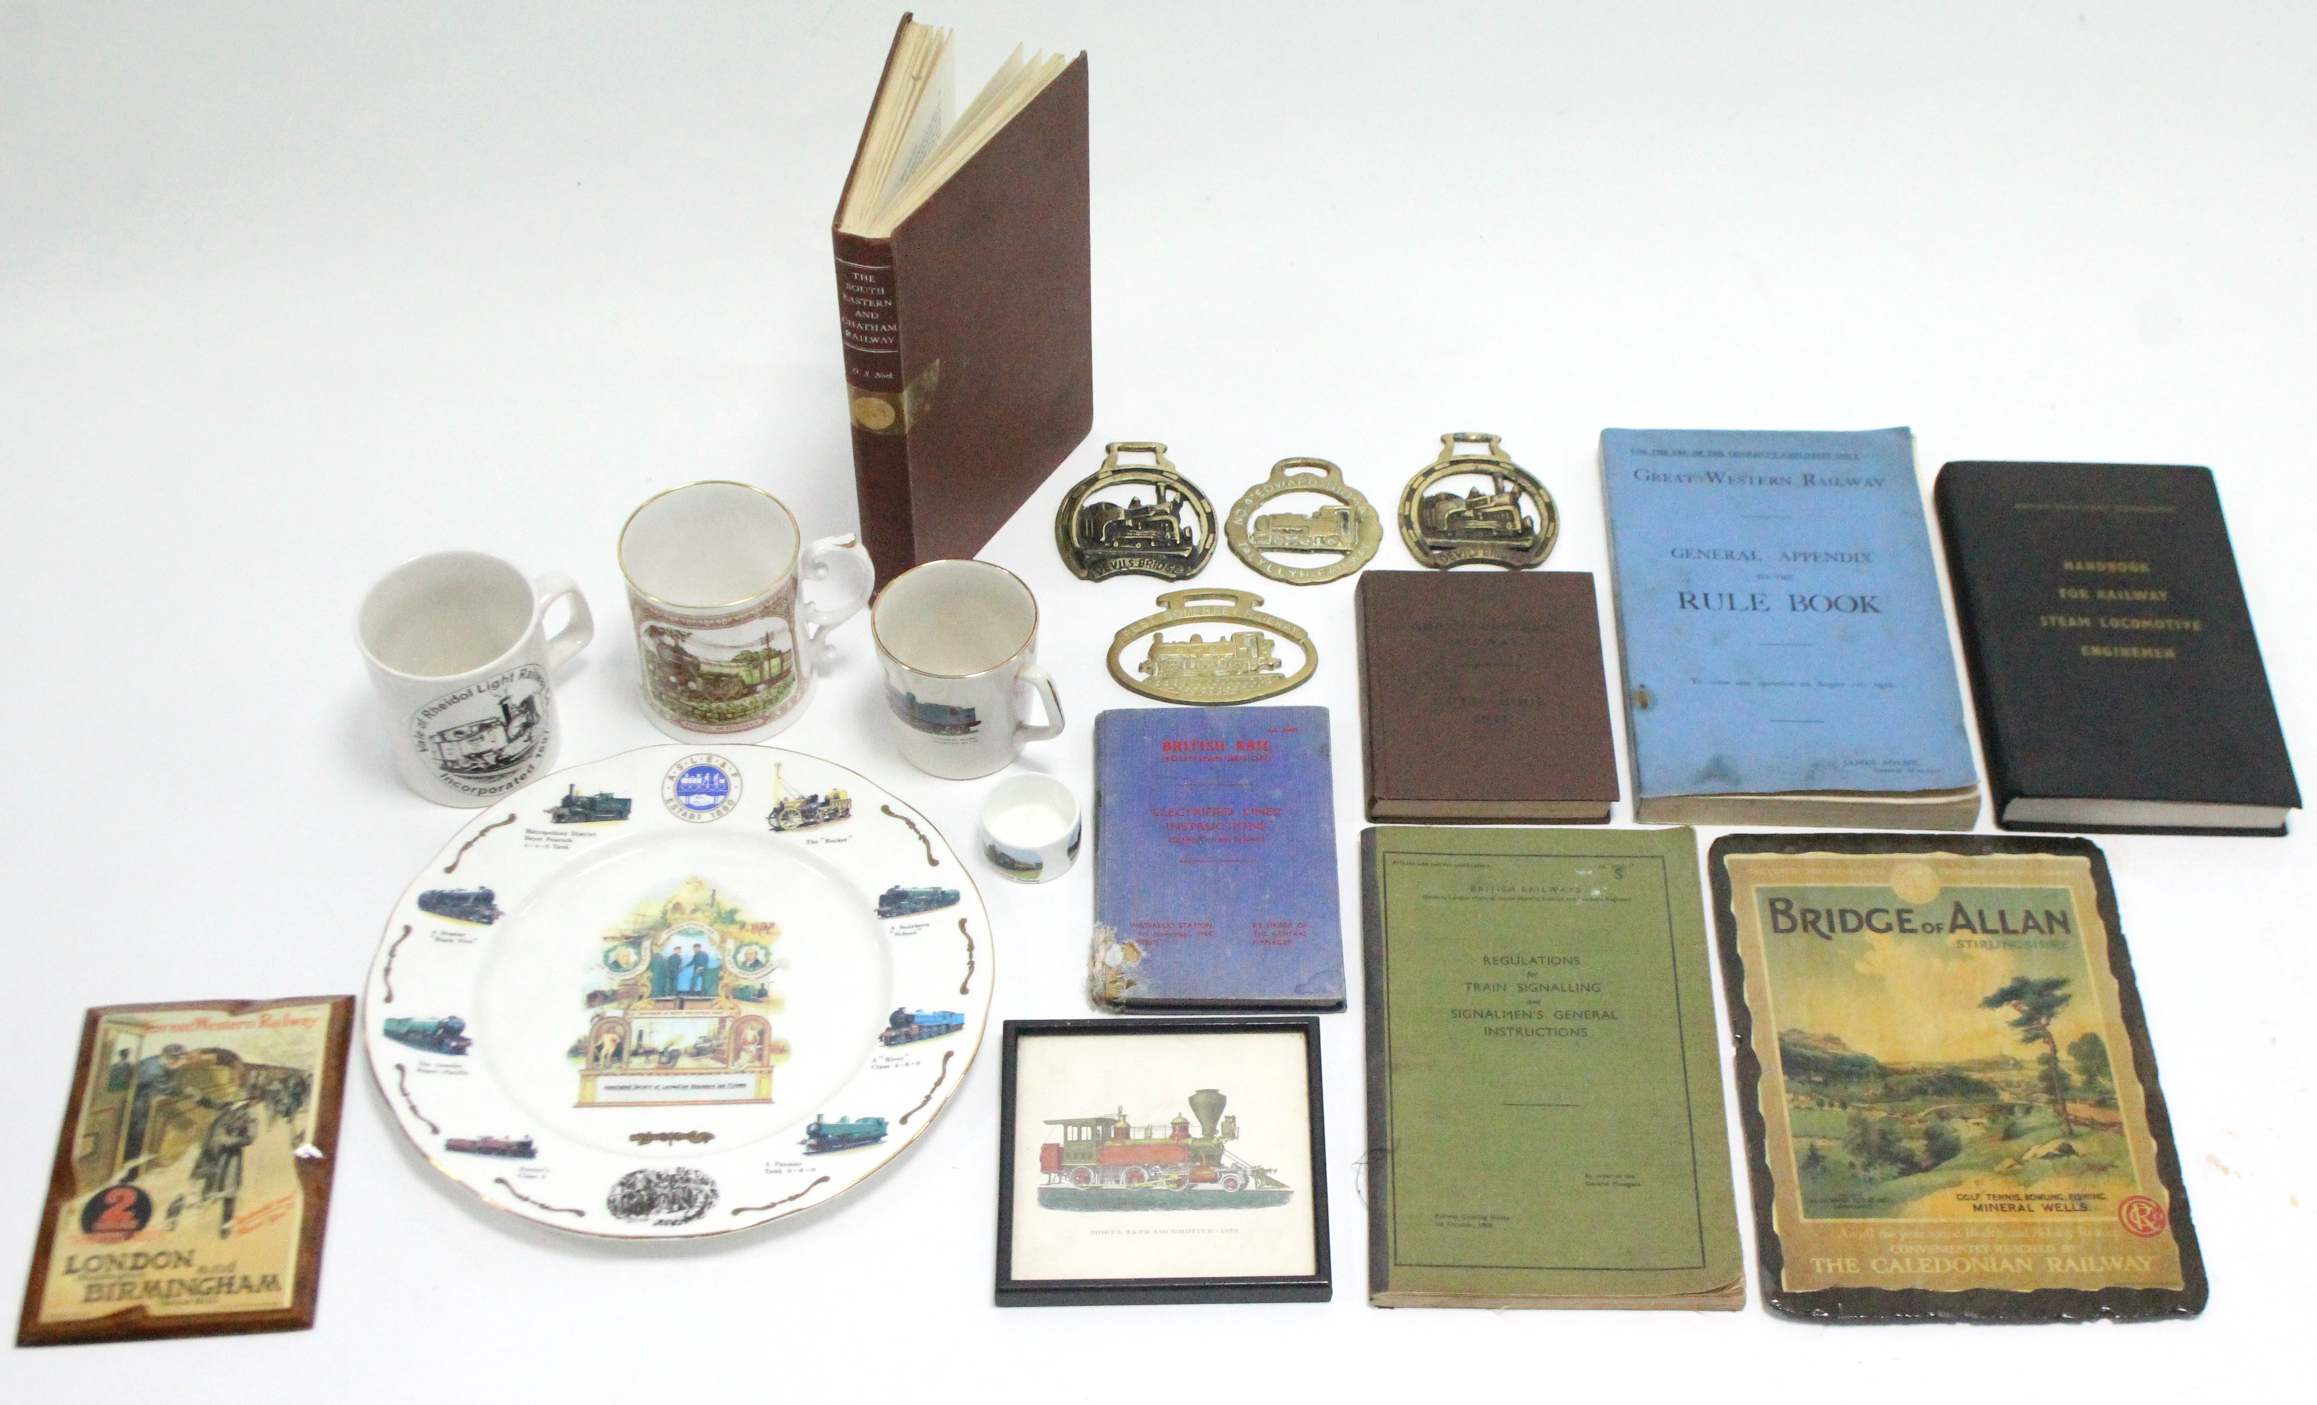 Lot 148 - Various mid-20th century railway driver's books, ornaments, etc.